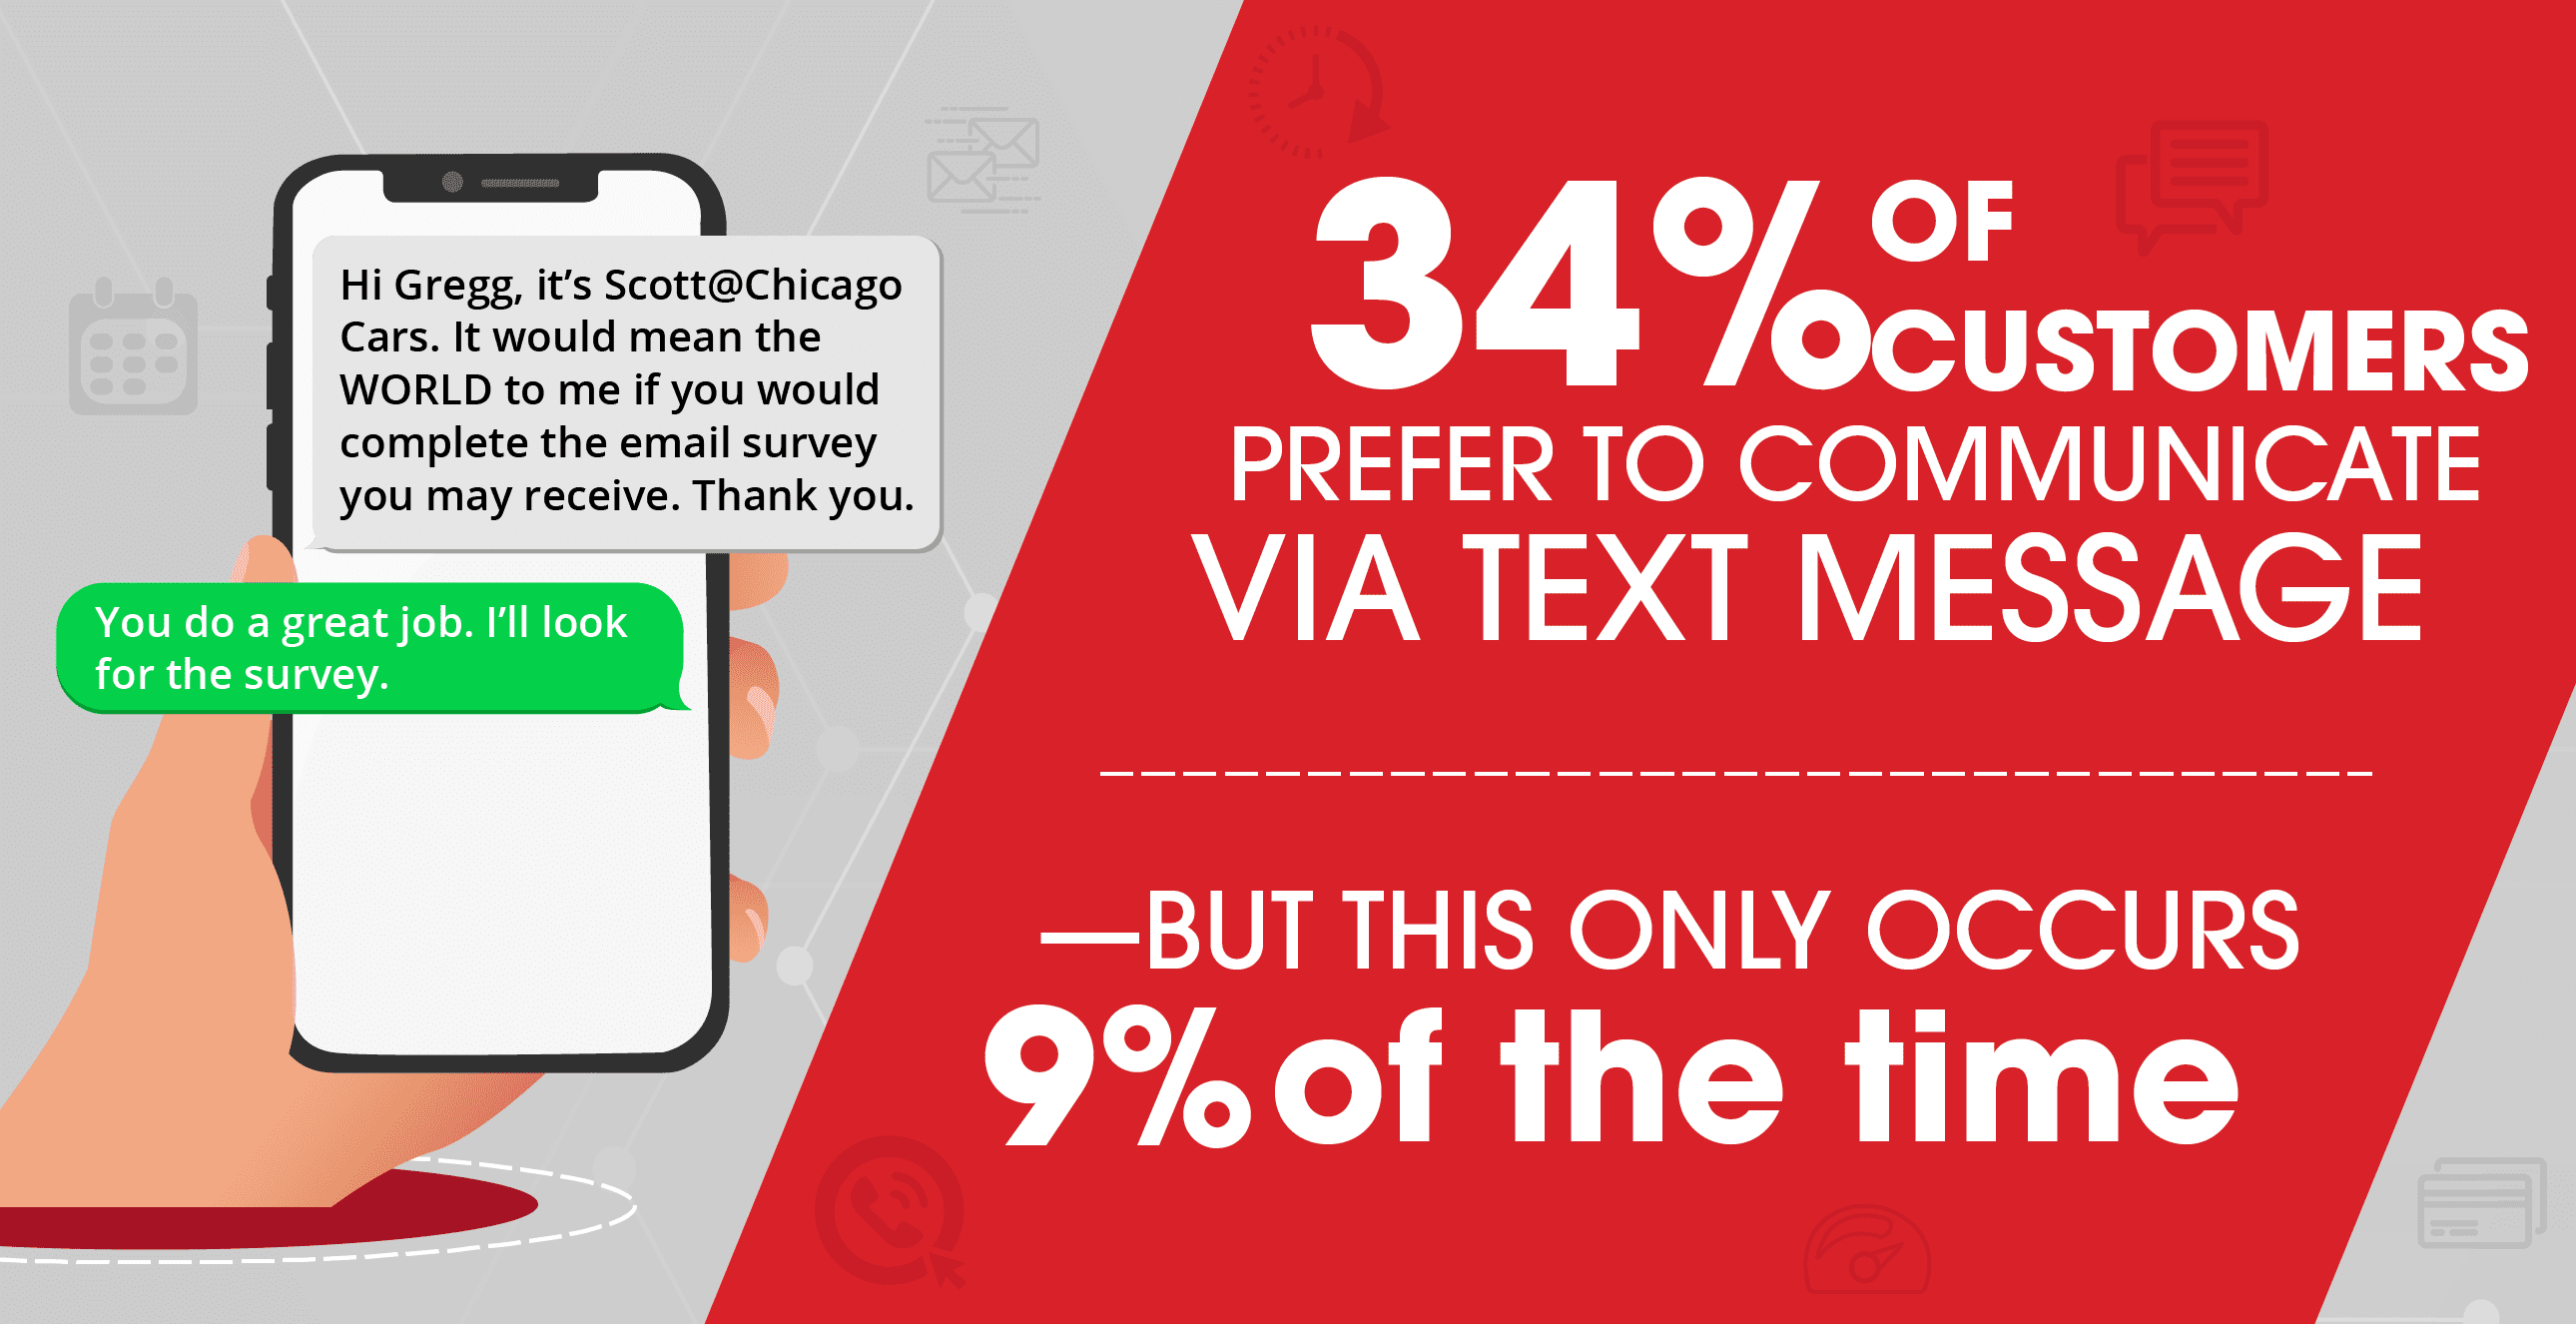 34% of customers prefer to communicate via text message